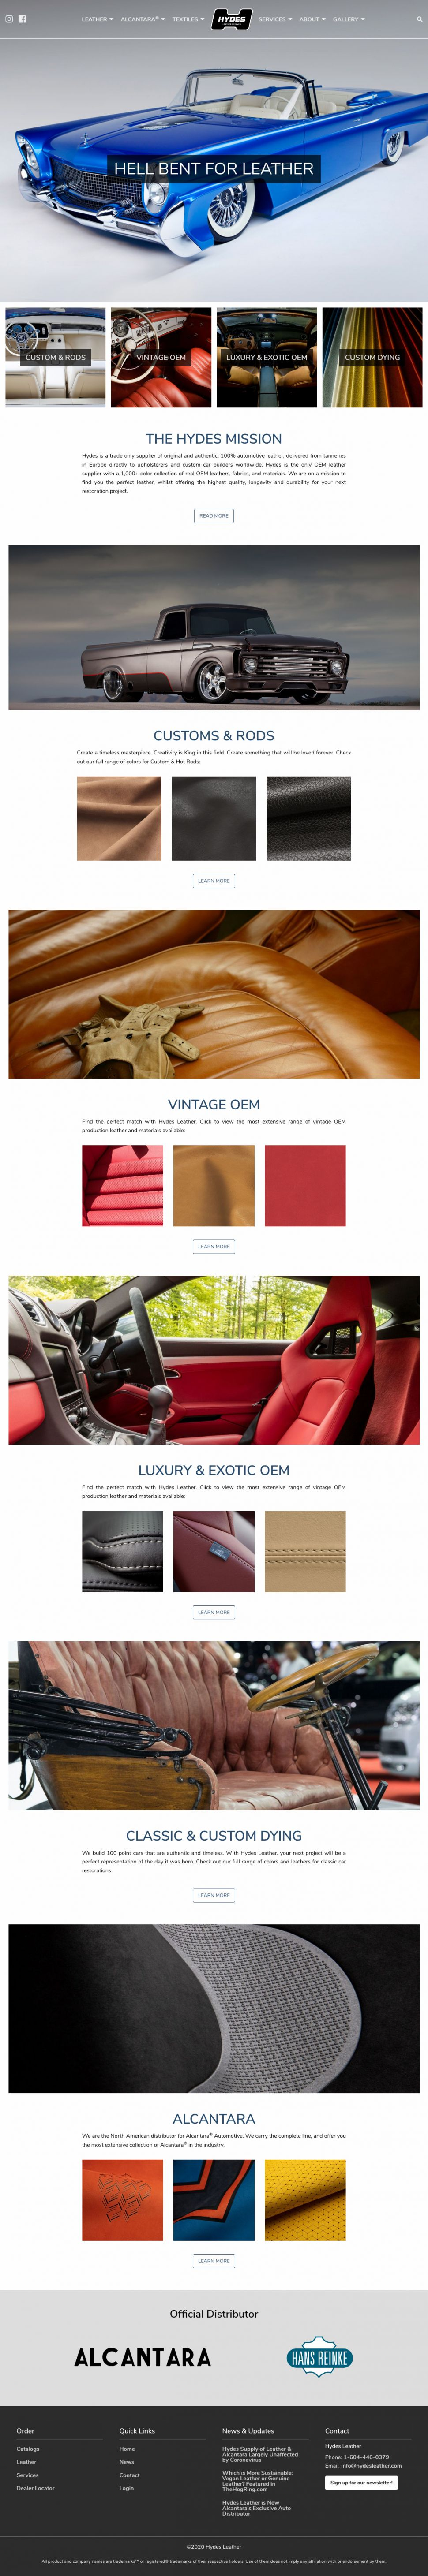 Screenshot of Hydes Leather website home page.